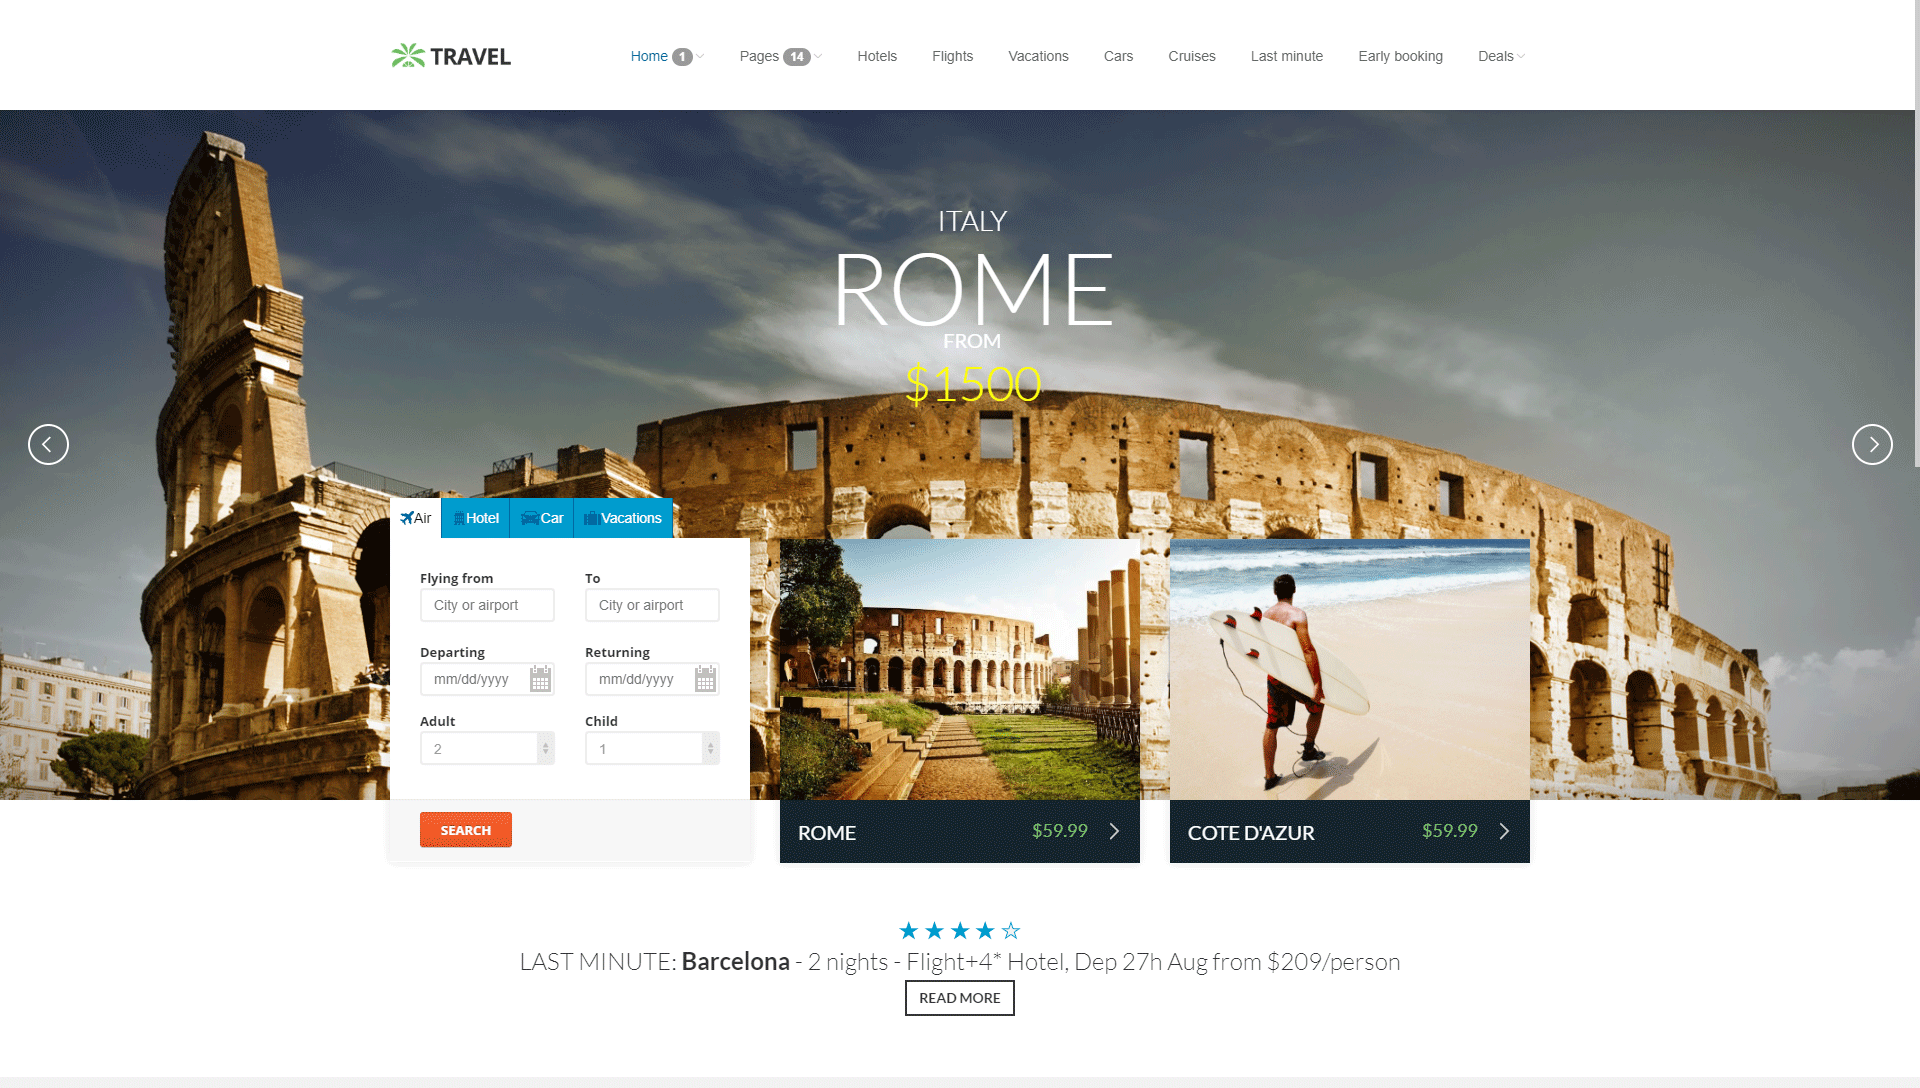 Travel Agency - Online Hotel Booking